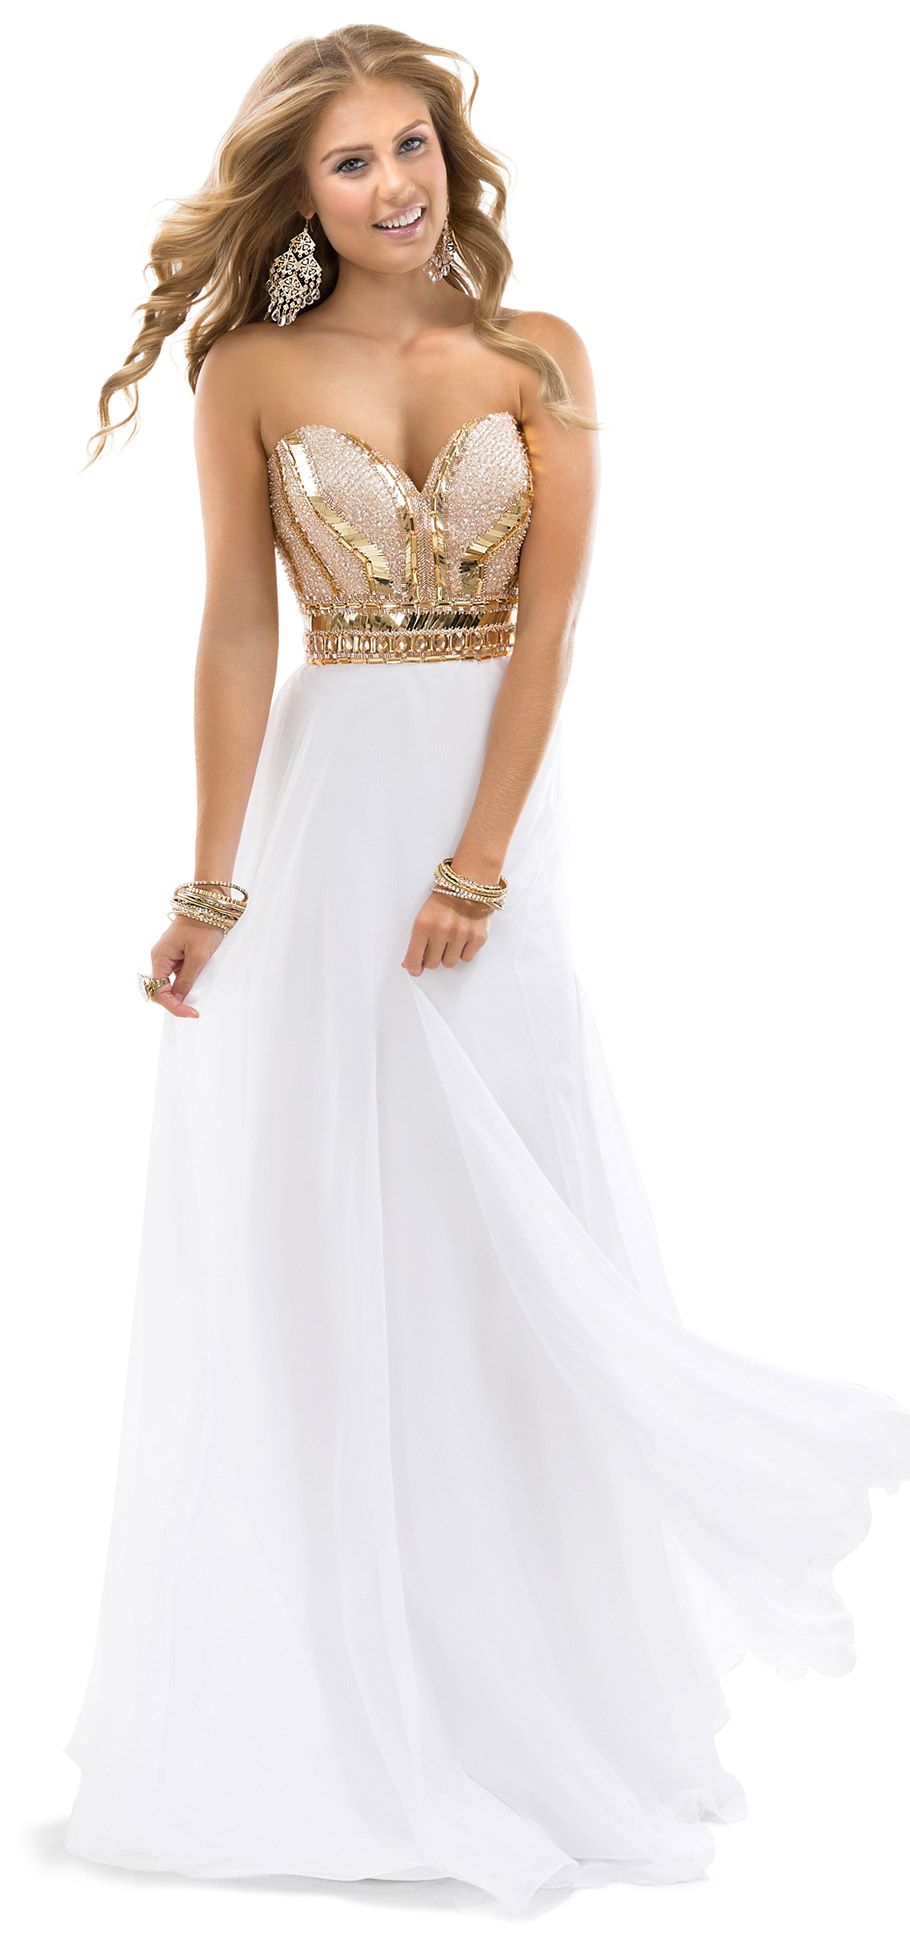 Rose gold and white evening dress with elegant skirt and copper